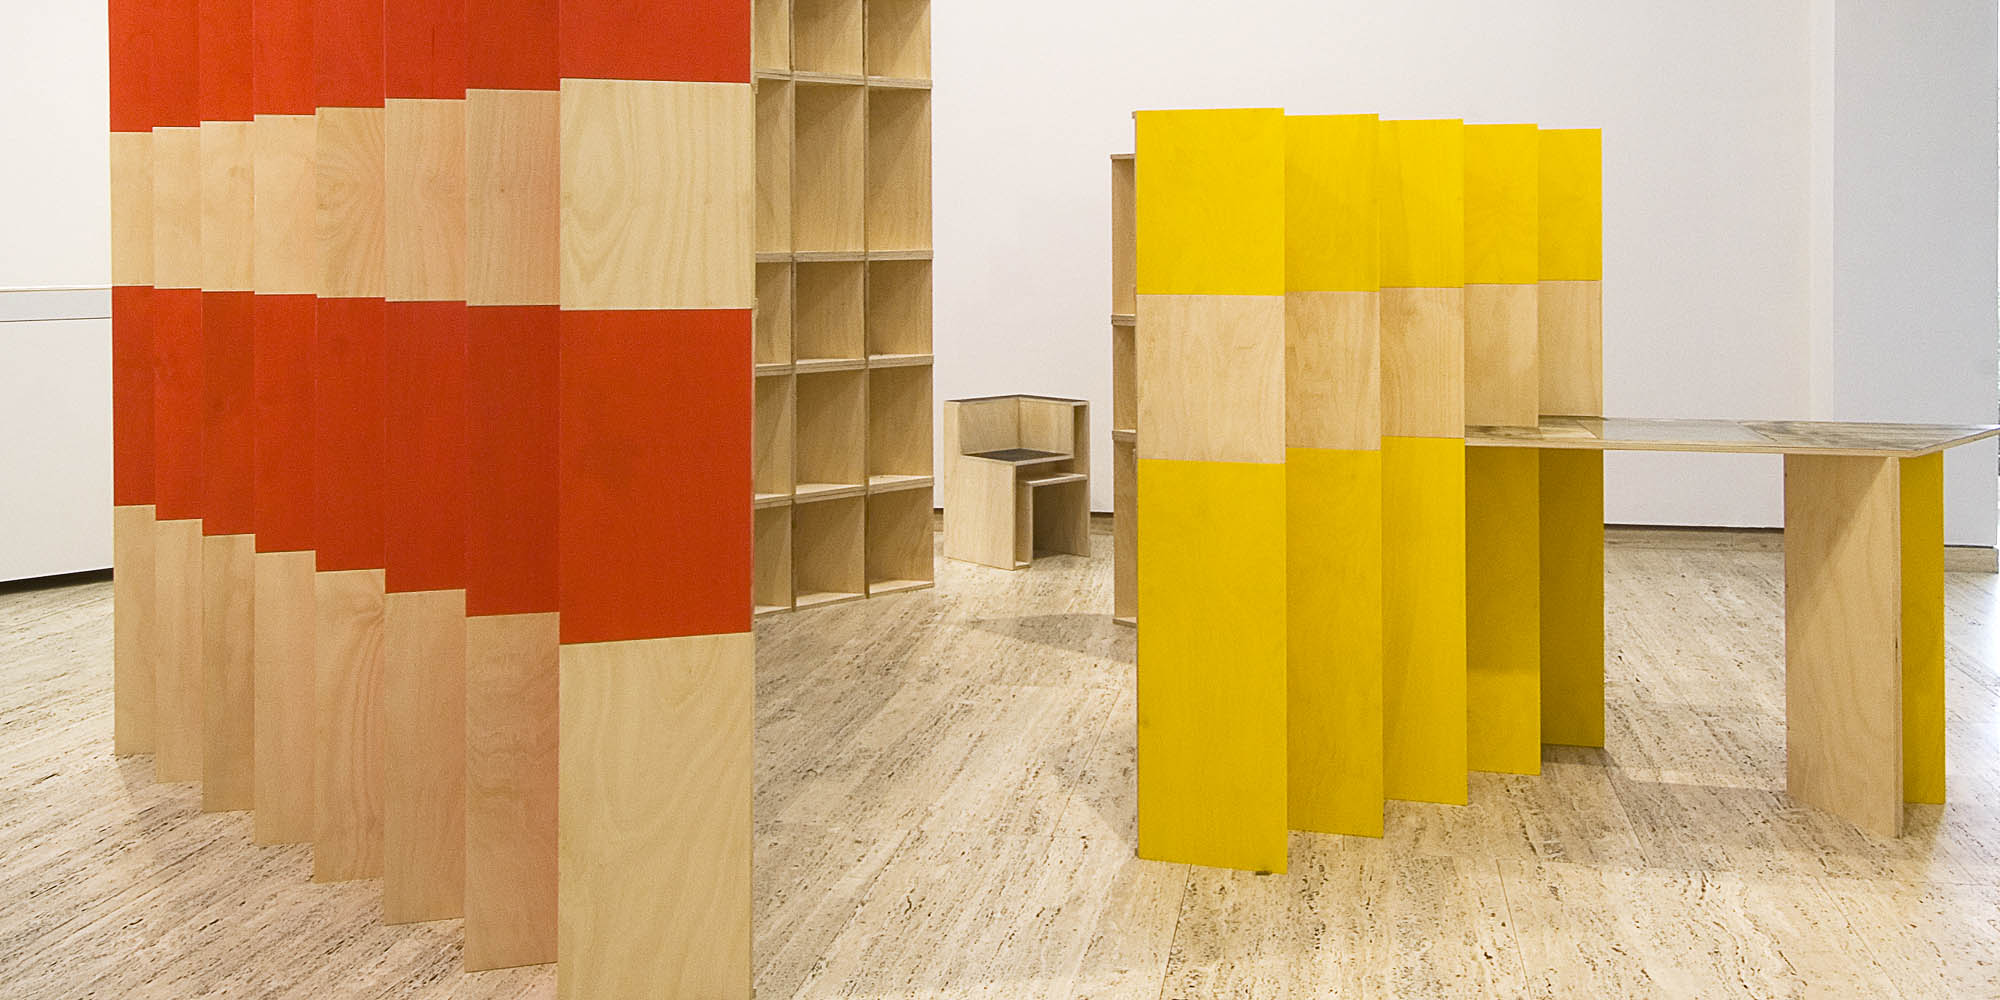 Gail Hastings, missing walls: bureaucracy art work, 2007, as exhibited at the Art Gallery of NSW; Collection: Daimler Contemporary, Berlin